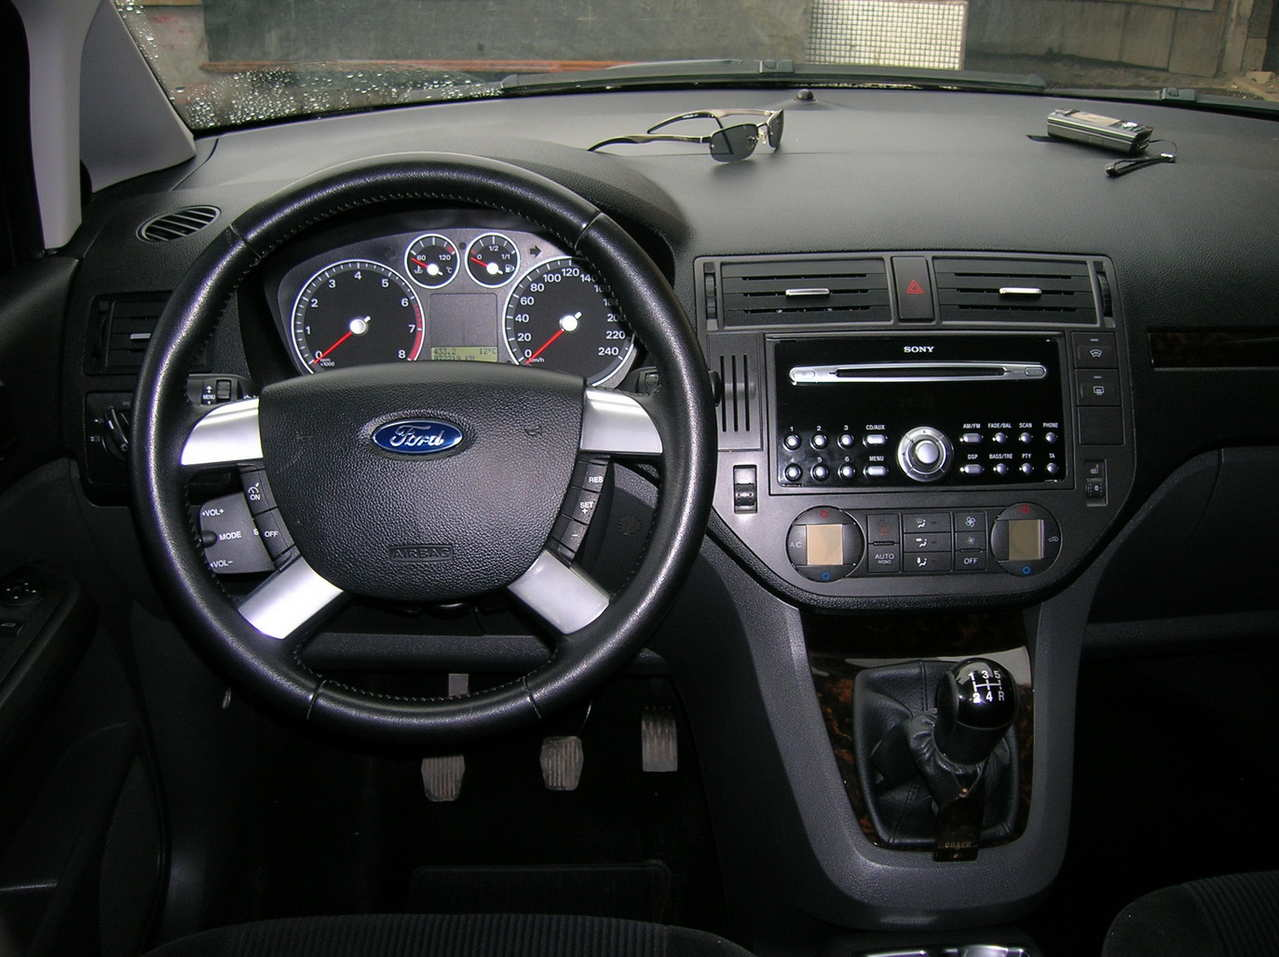 2005 ford c max pictures gasoline ff manual for sale. Black Bedroom Furniture Sets. Home Design Ideas